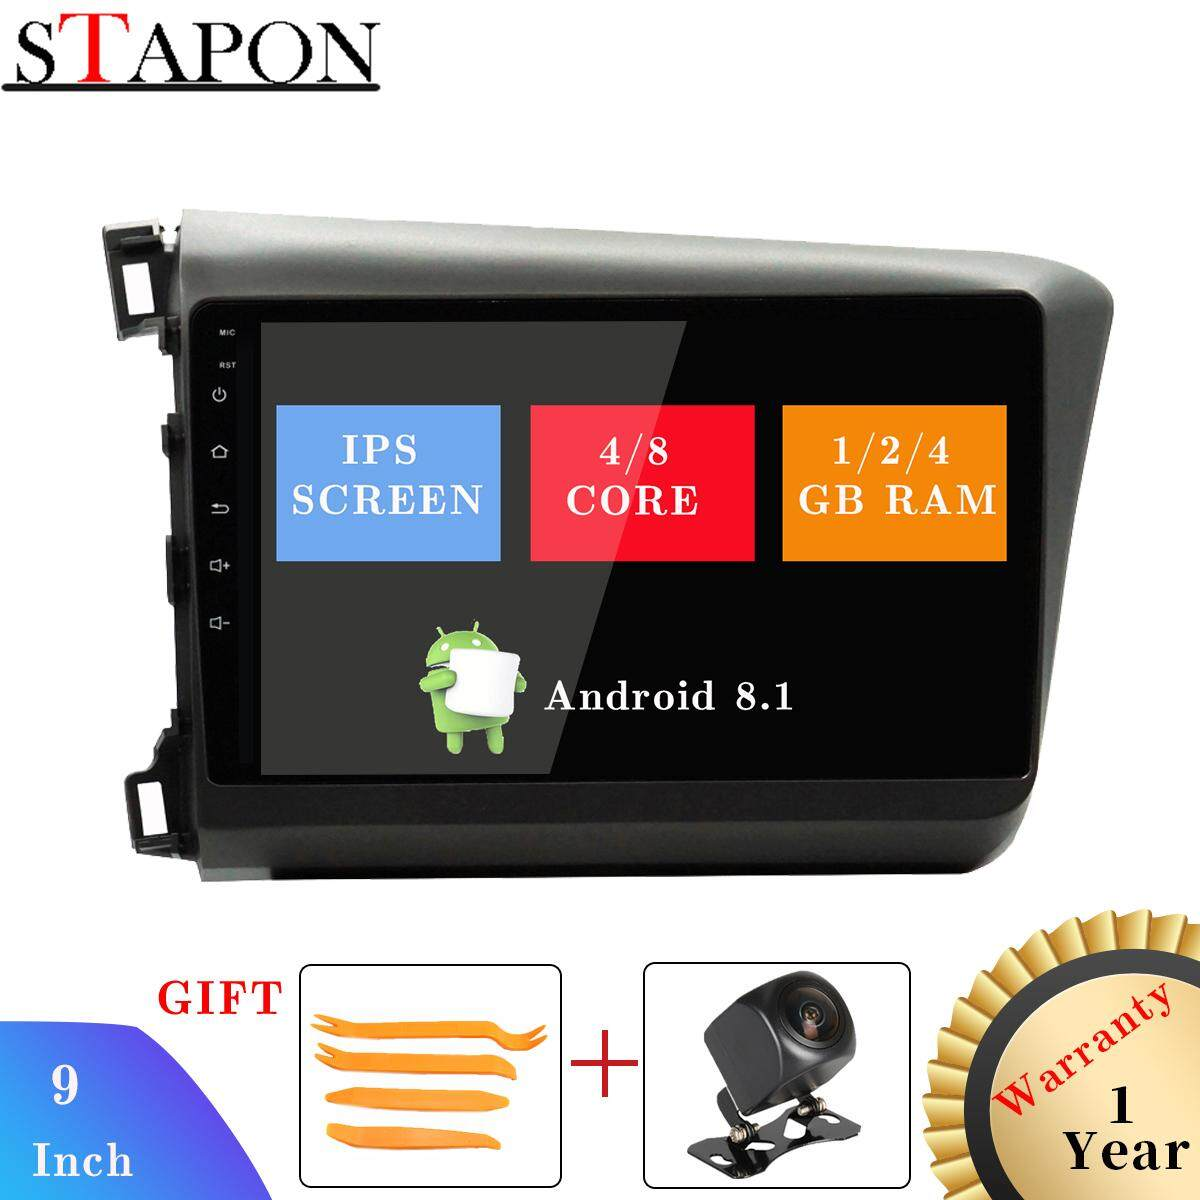 STAPON 9inch 2 5D IPS for honda civic 2012-2015 Android 8 1 4G RAM car  stereo navigation head unit plug and play multimedia player with WiFi  Bluetooth